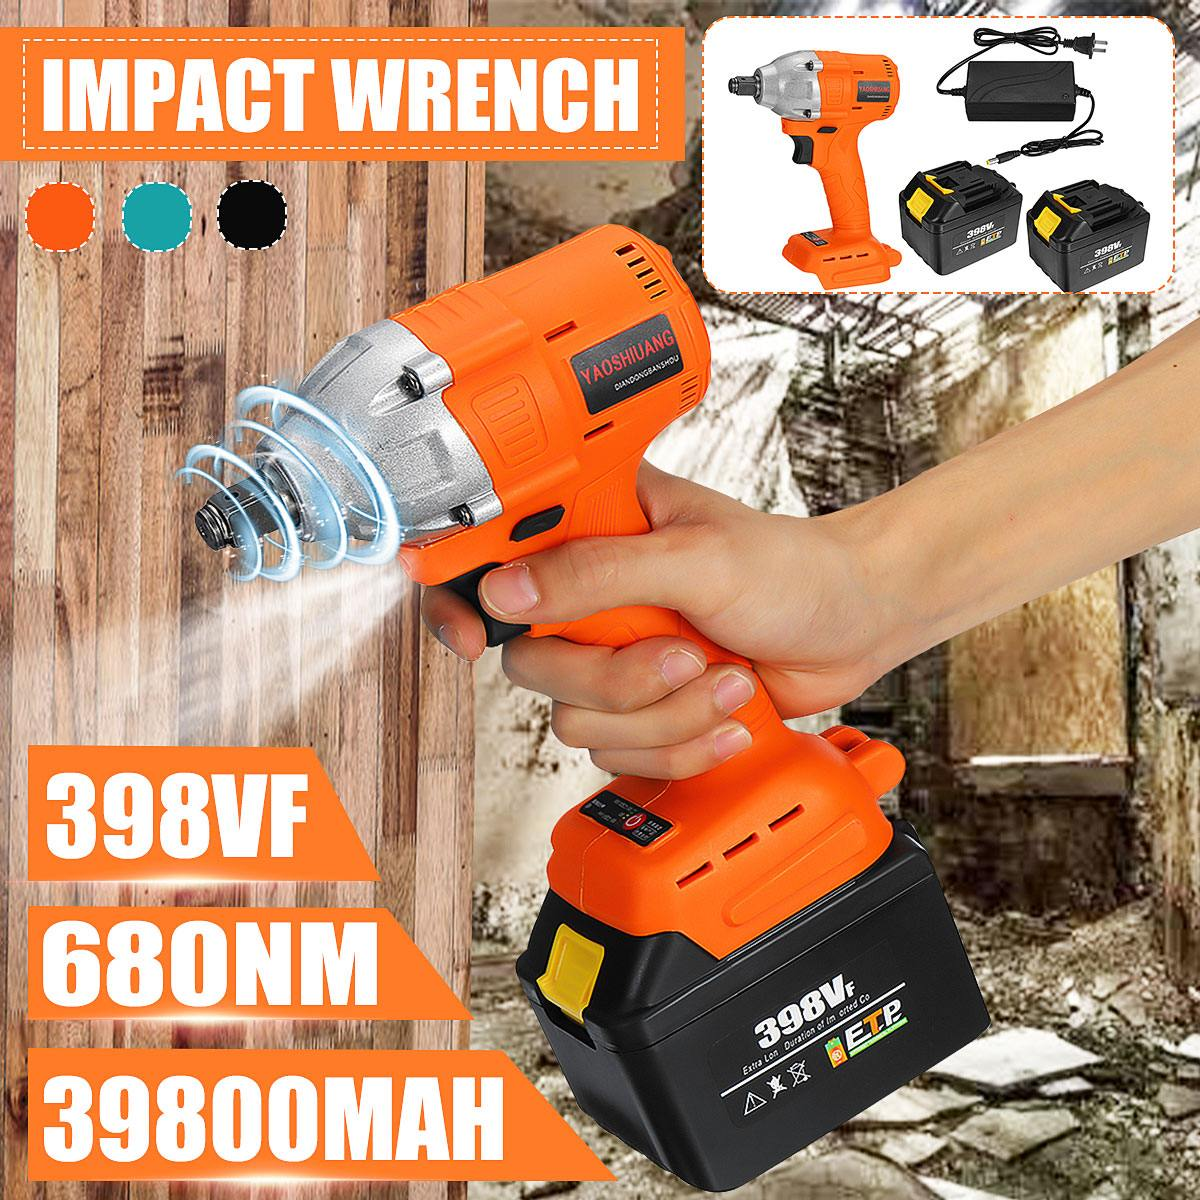 398VF 39800mah Electric Impact Brushless Wrench Electric Wrench 2 Battery Rechargeable 1/2'' Cordless Hand Power Tool 110-240V